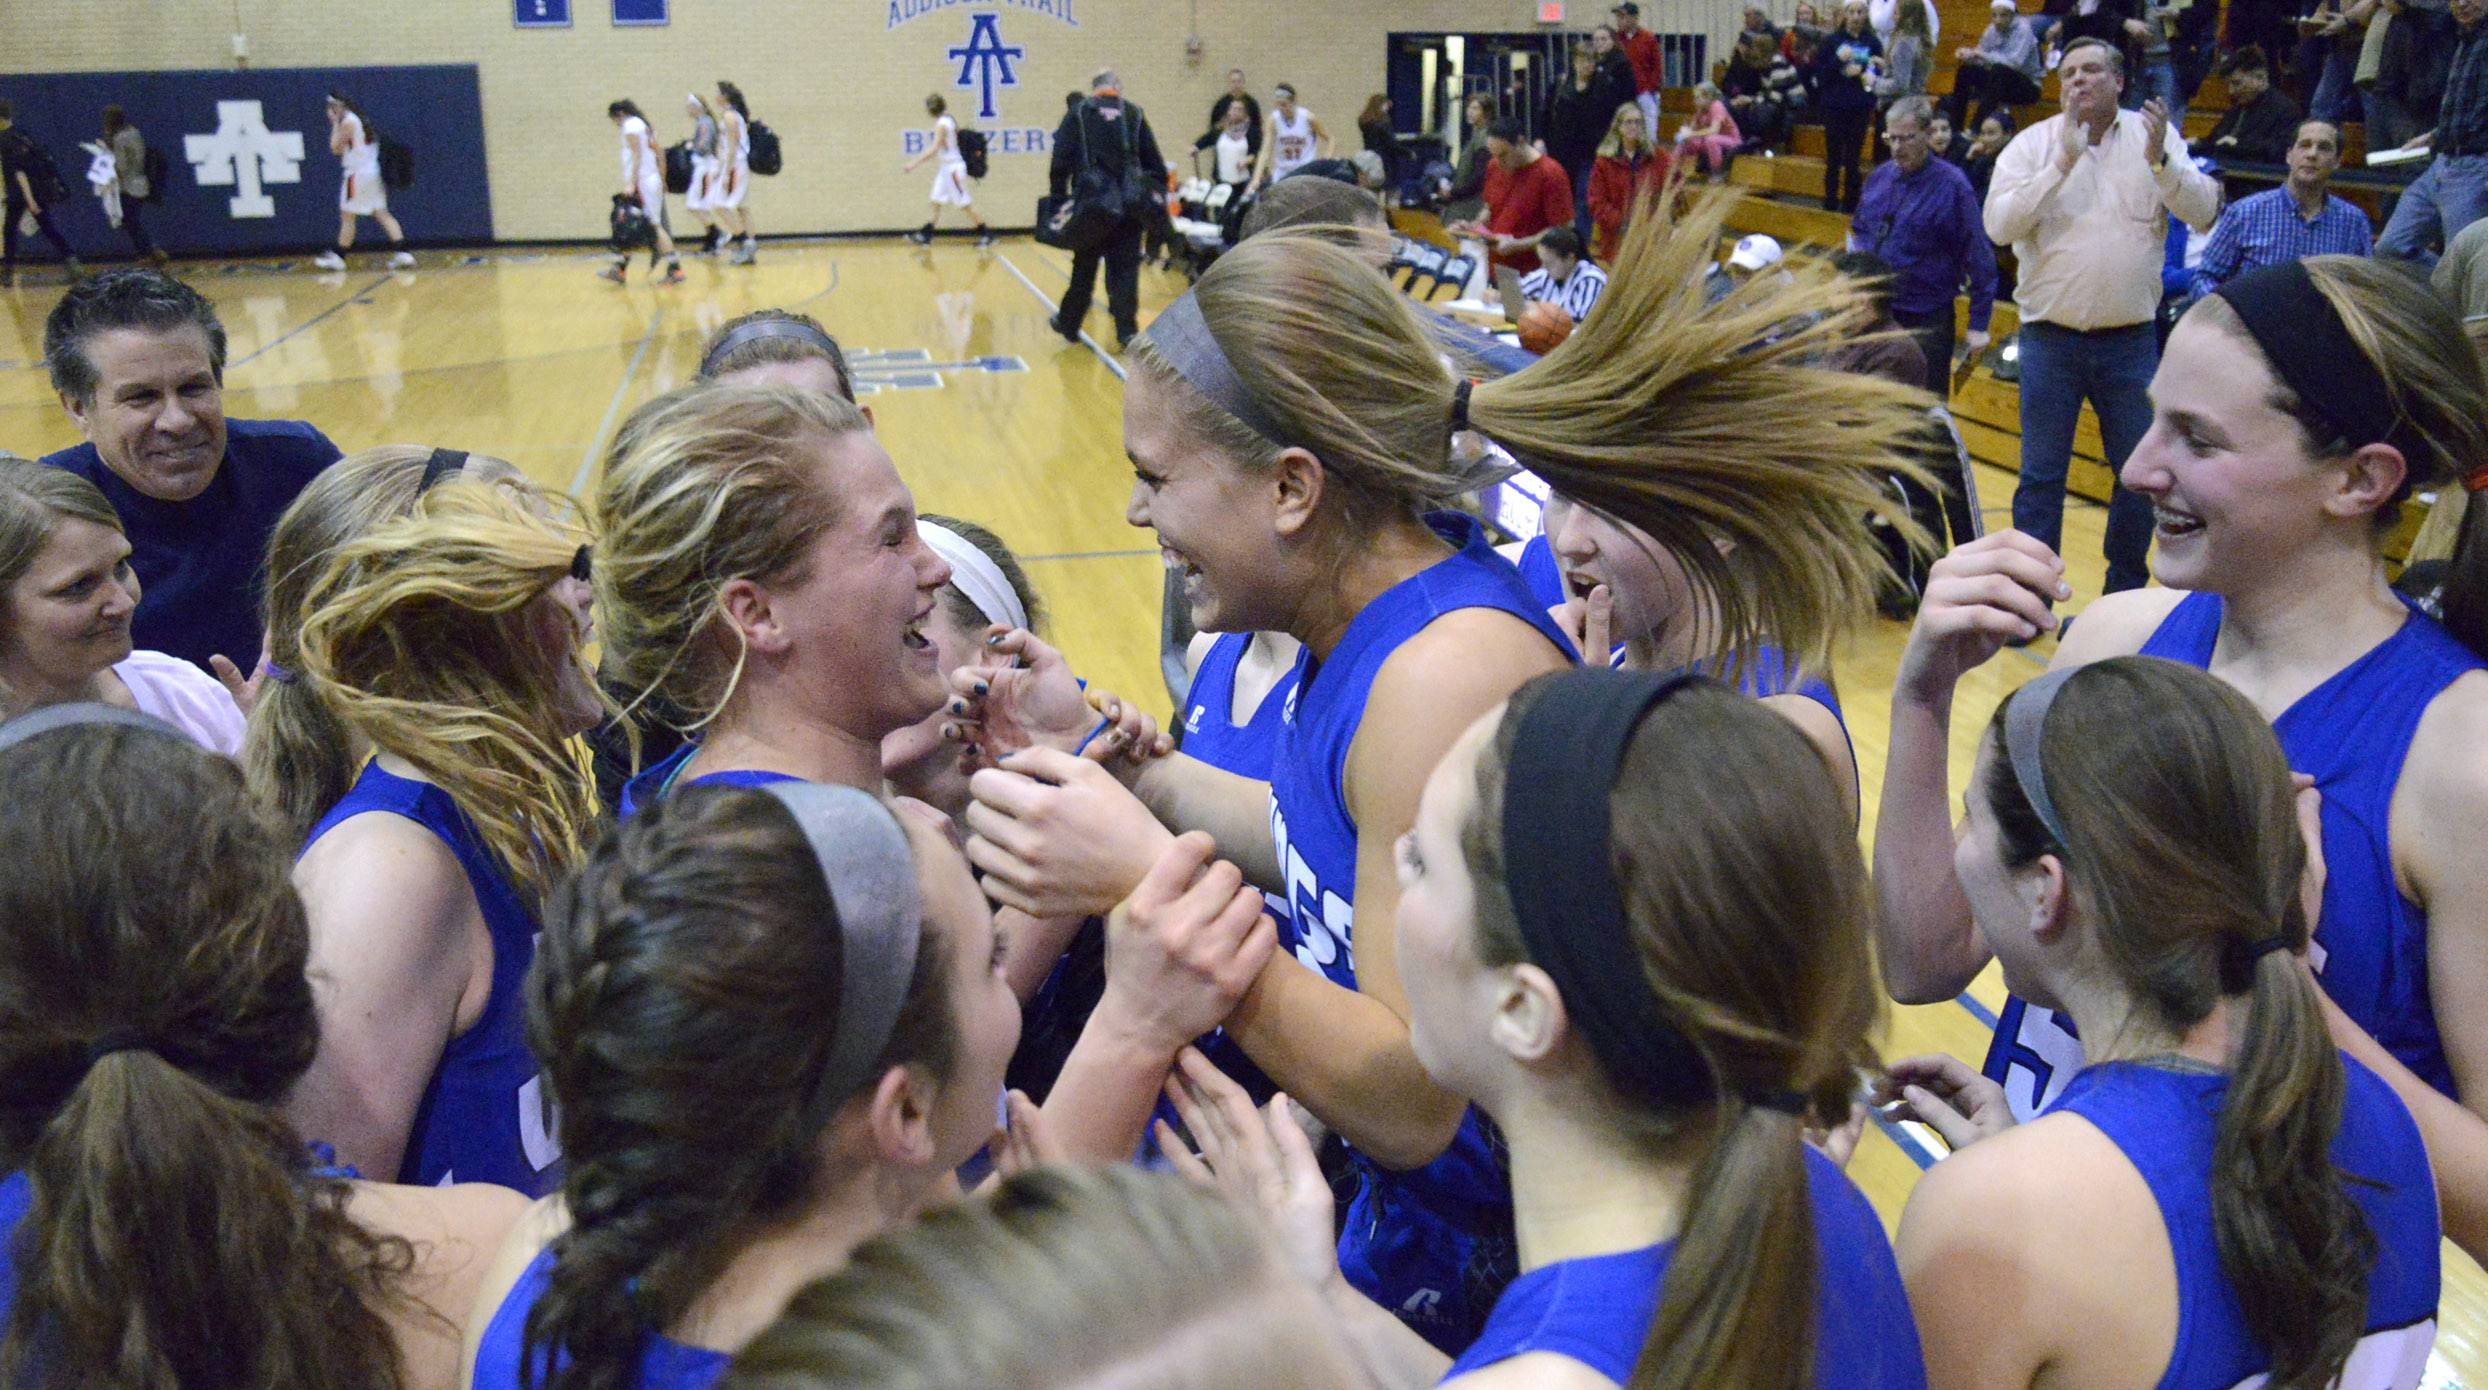 Geneva's Janie McCloughan, center left, celebrates with teammate Bella Medina while surrounded by the Vikings team after McCloughan made the winning free throw .